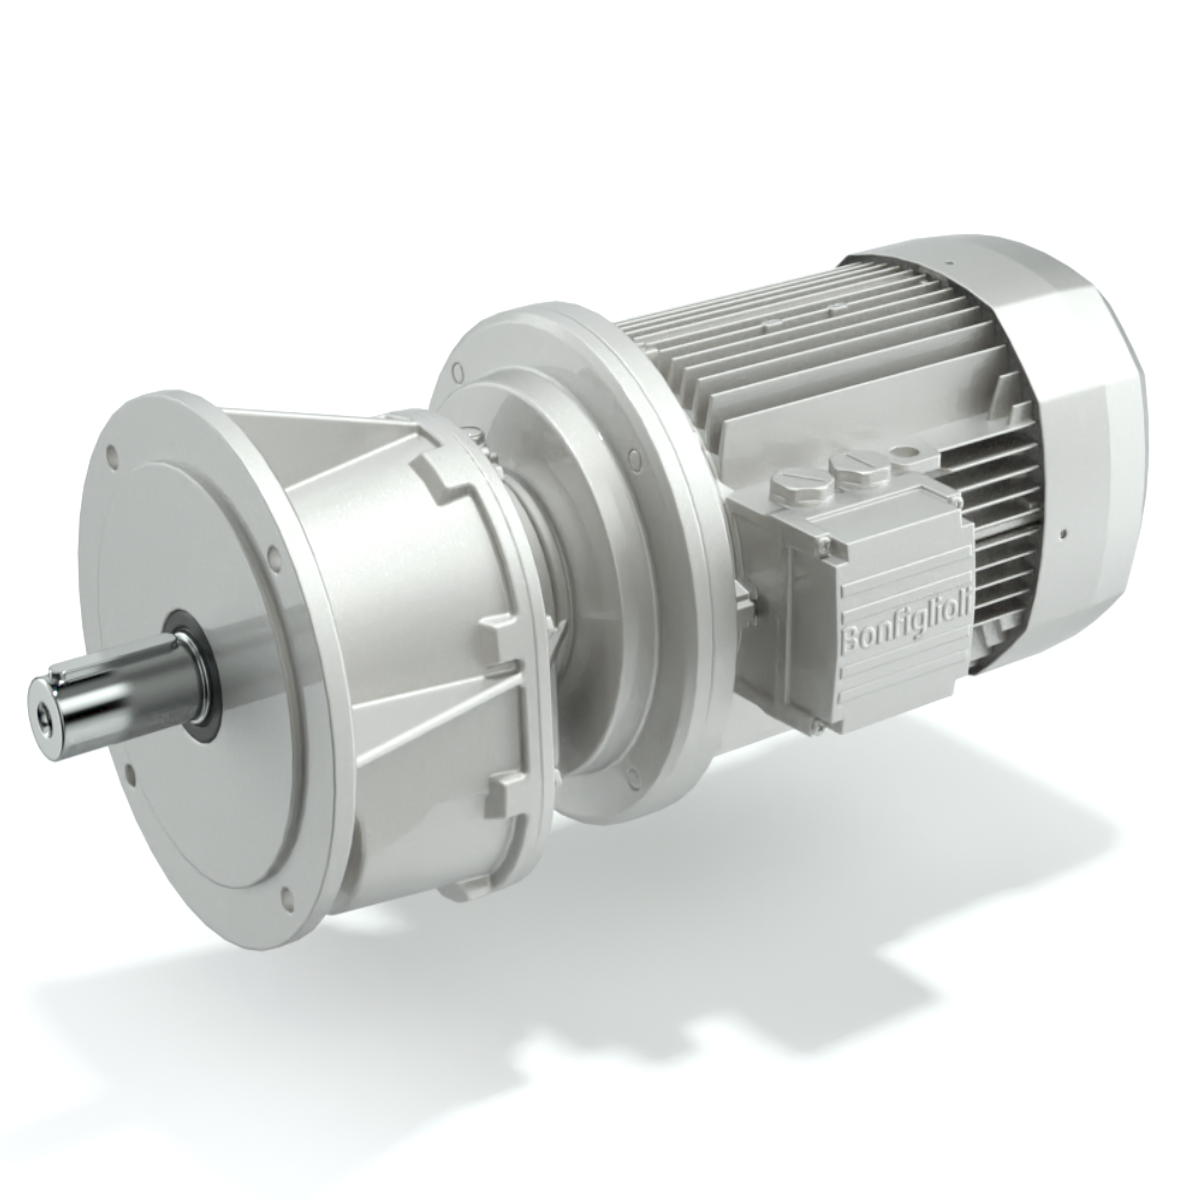 Bonfiglioli gearmotors AS Series